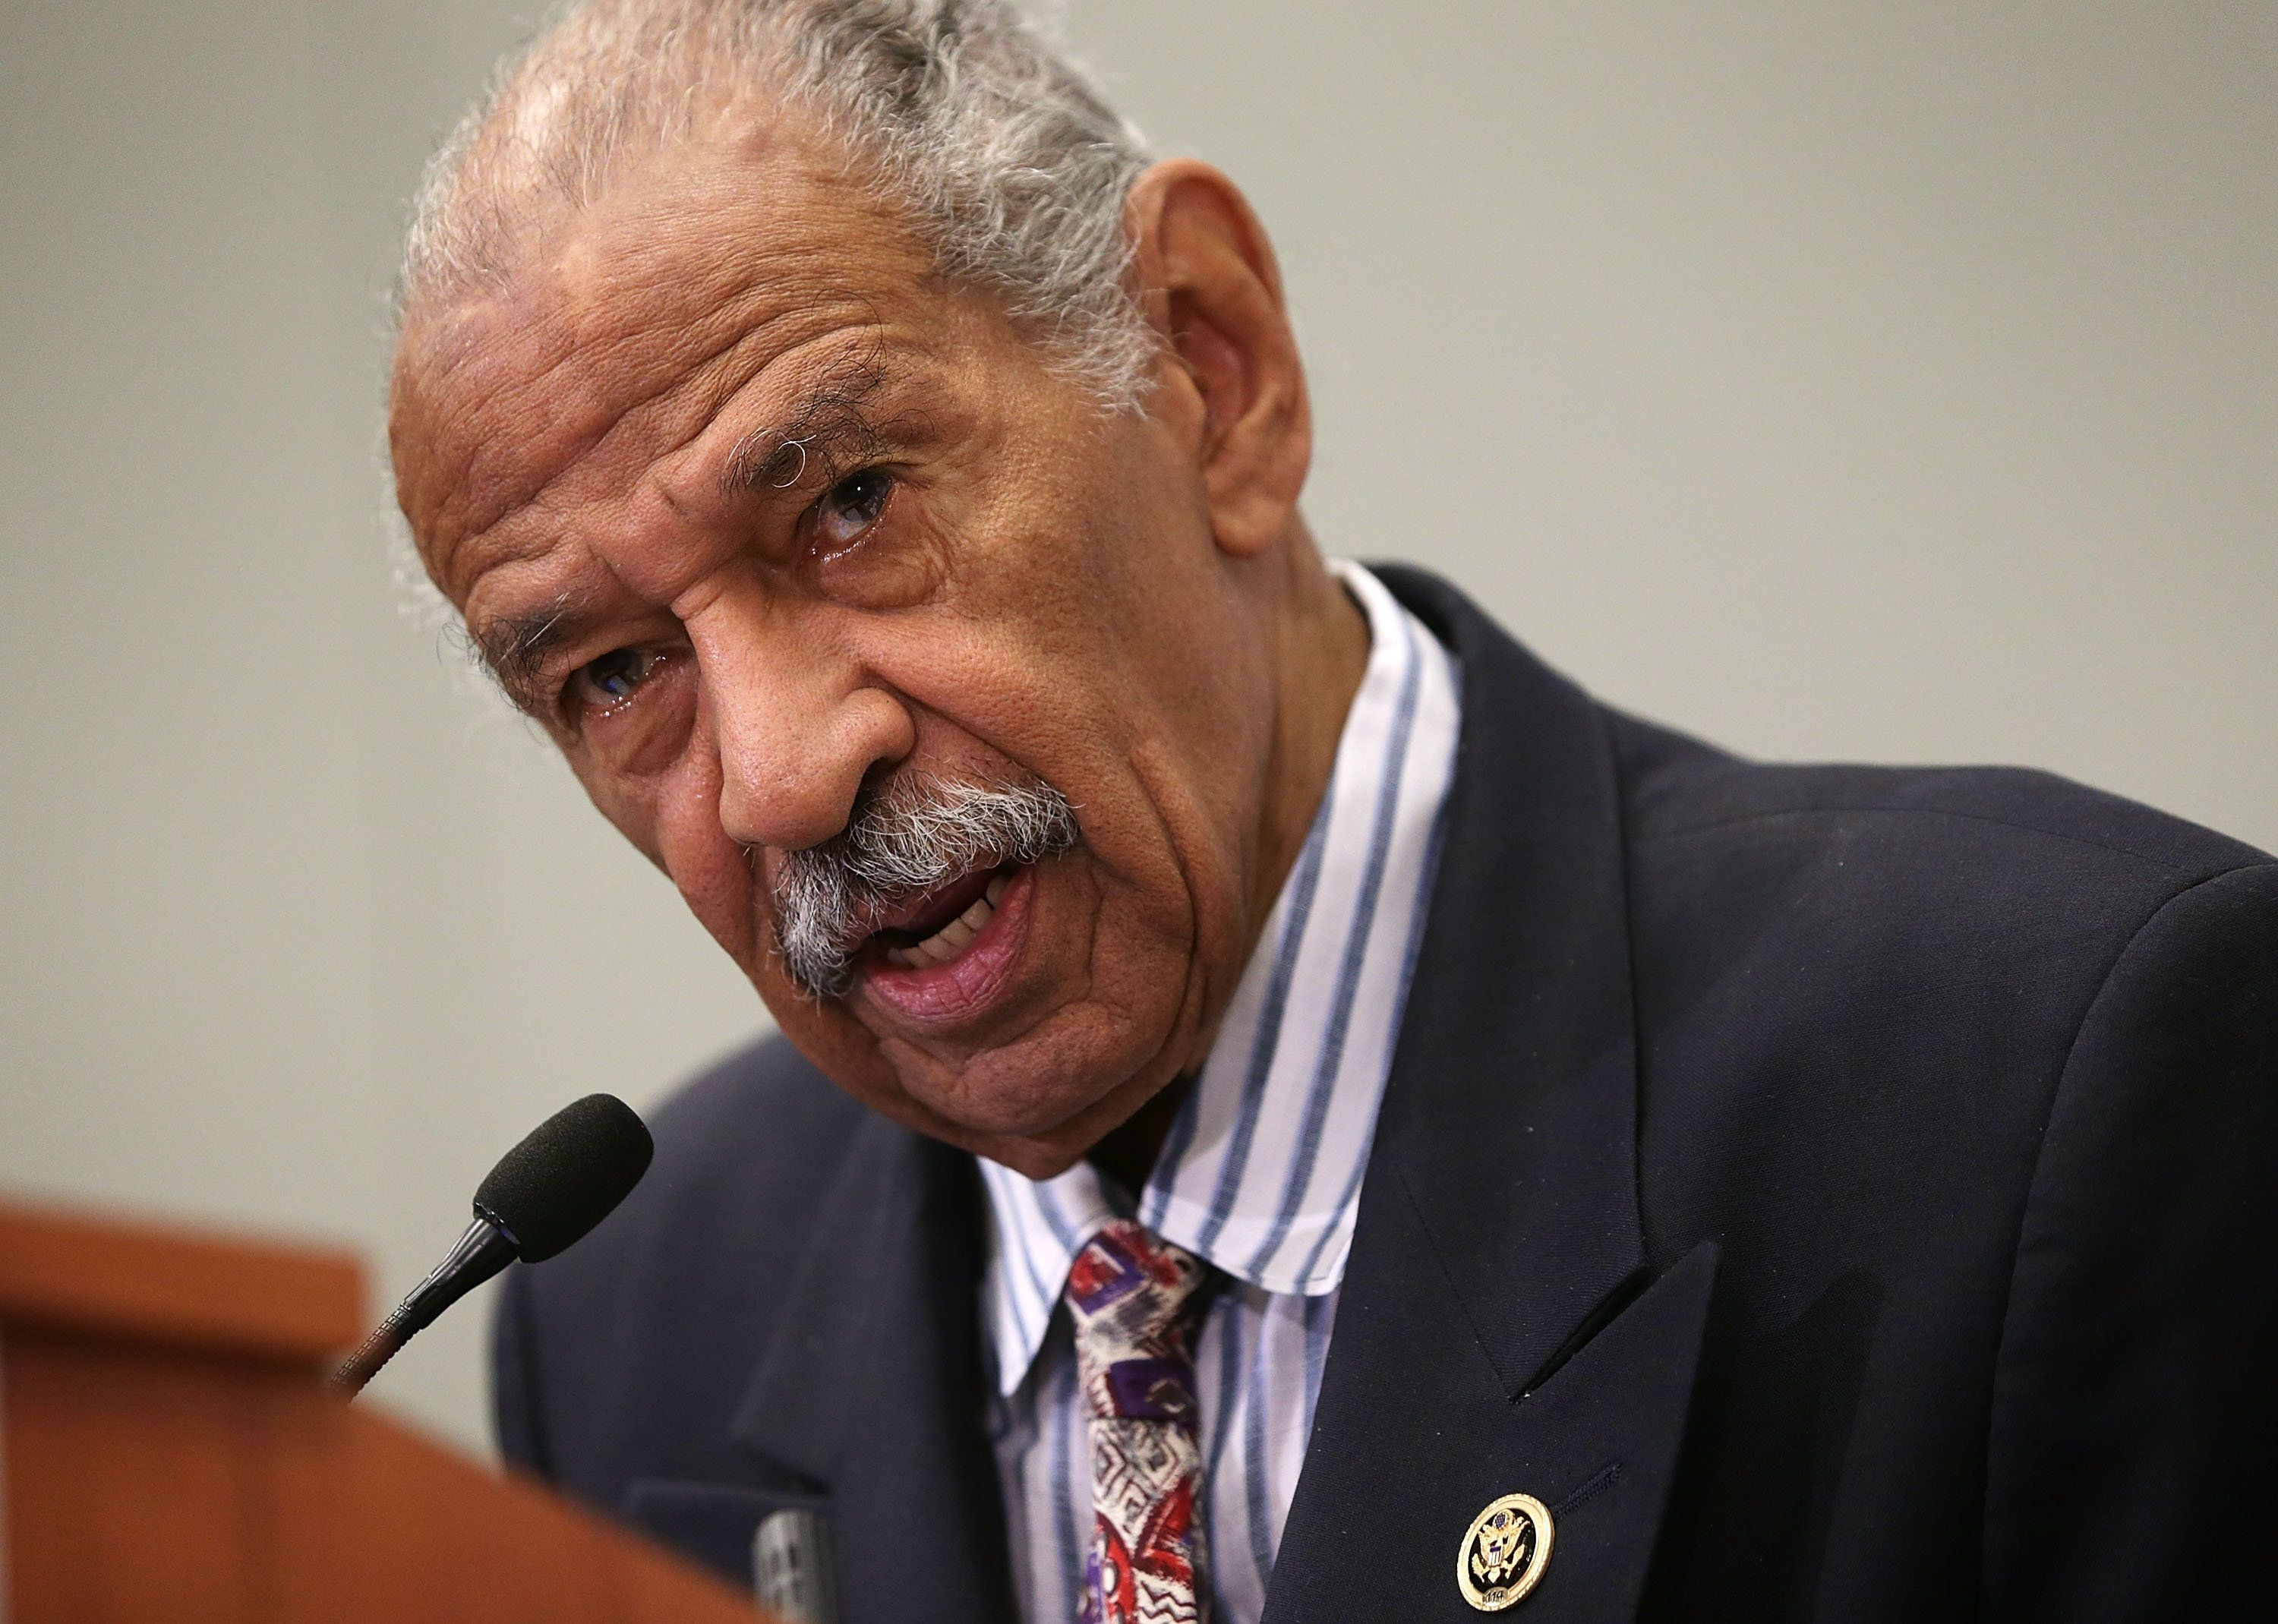 WASHINGTON, DC - SEPTEMBER 18:  U.S. Rep. John Conyers (D-MI) speaks at a session during the Congressional Black Caucus Foundation's 45th annual legislative conference September 18, 2015 in Washington, DC. Rep. Conyers spoke during a discussion on 'Judiciary BrainTrust: In Pursuit of Policing and Criminal Justice Reform'  (Photo by Alex Wong/Getty Images)